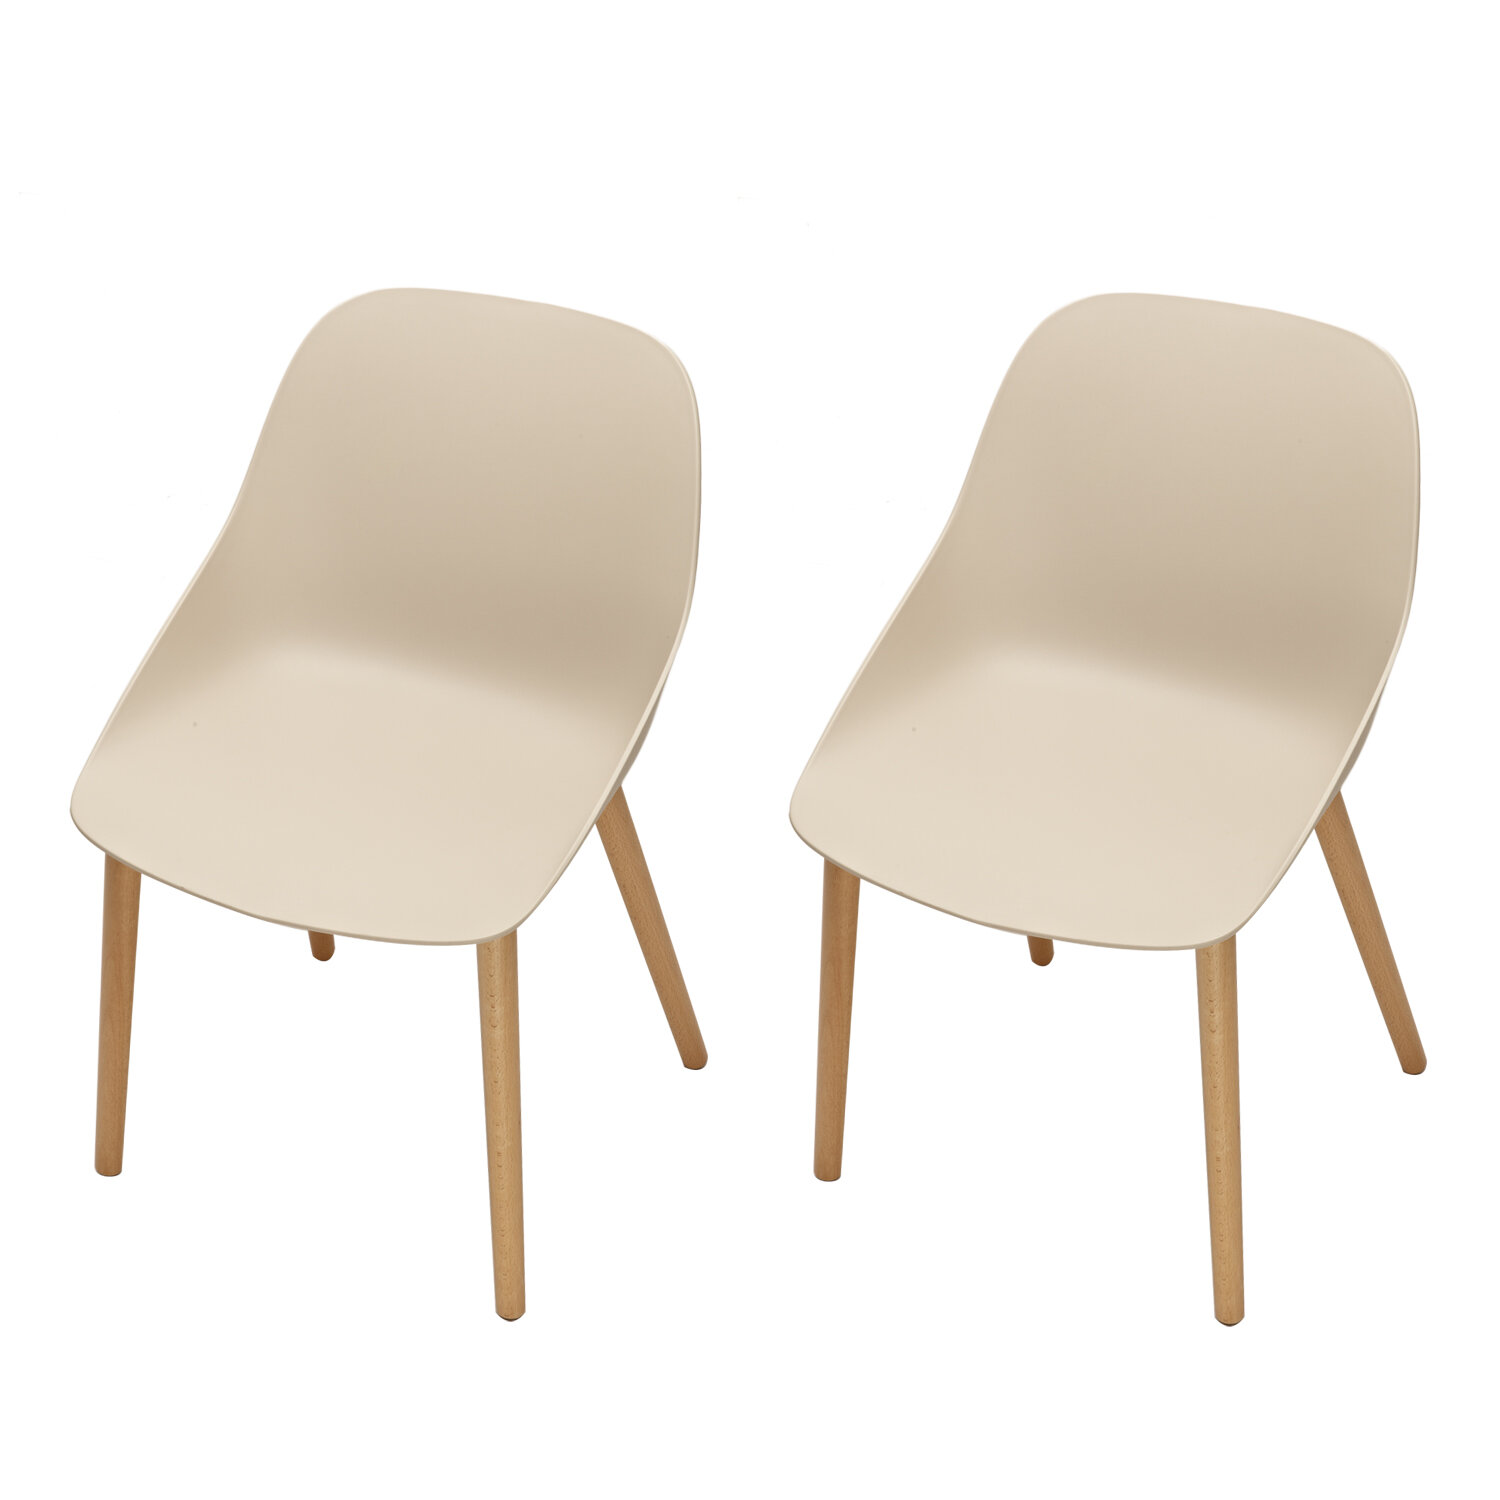 Amazing Sanor Beechwood Dining Chair Pabps2019 Chair Design Images Pabps2019Com